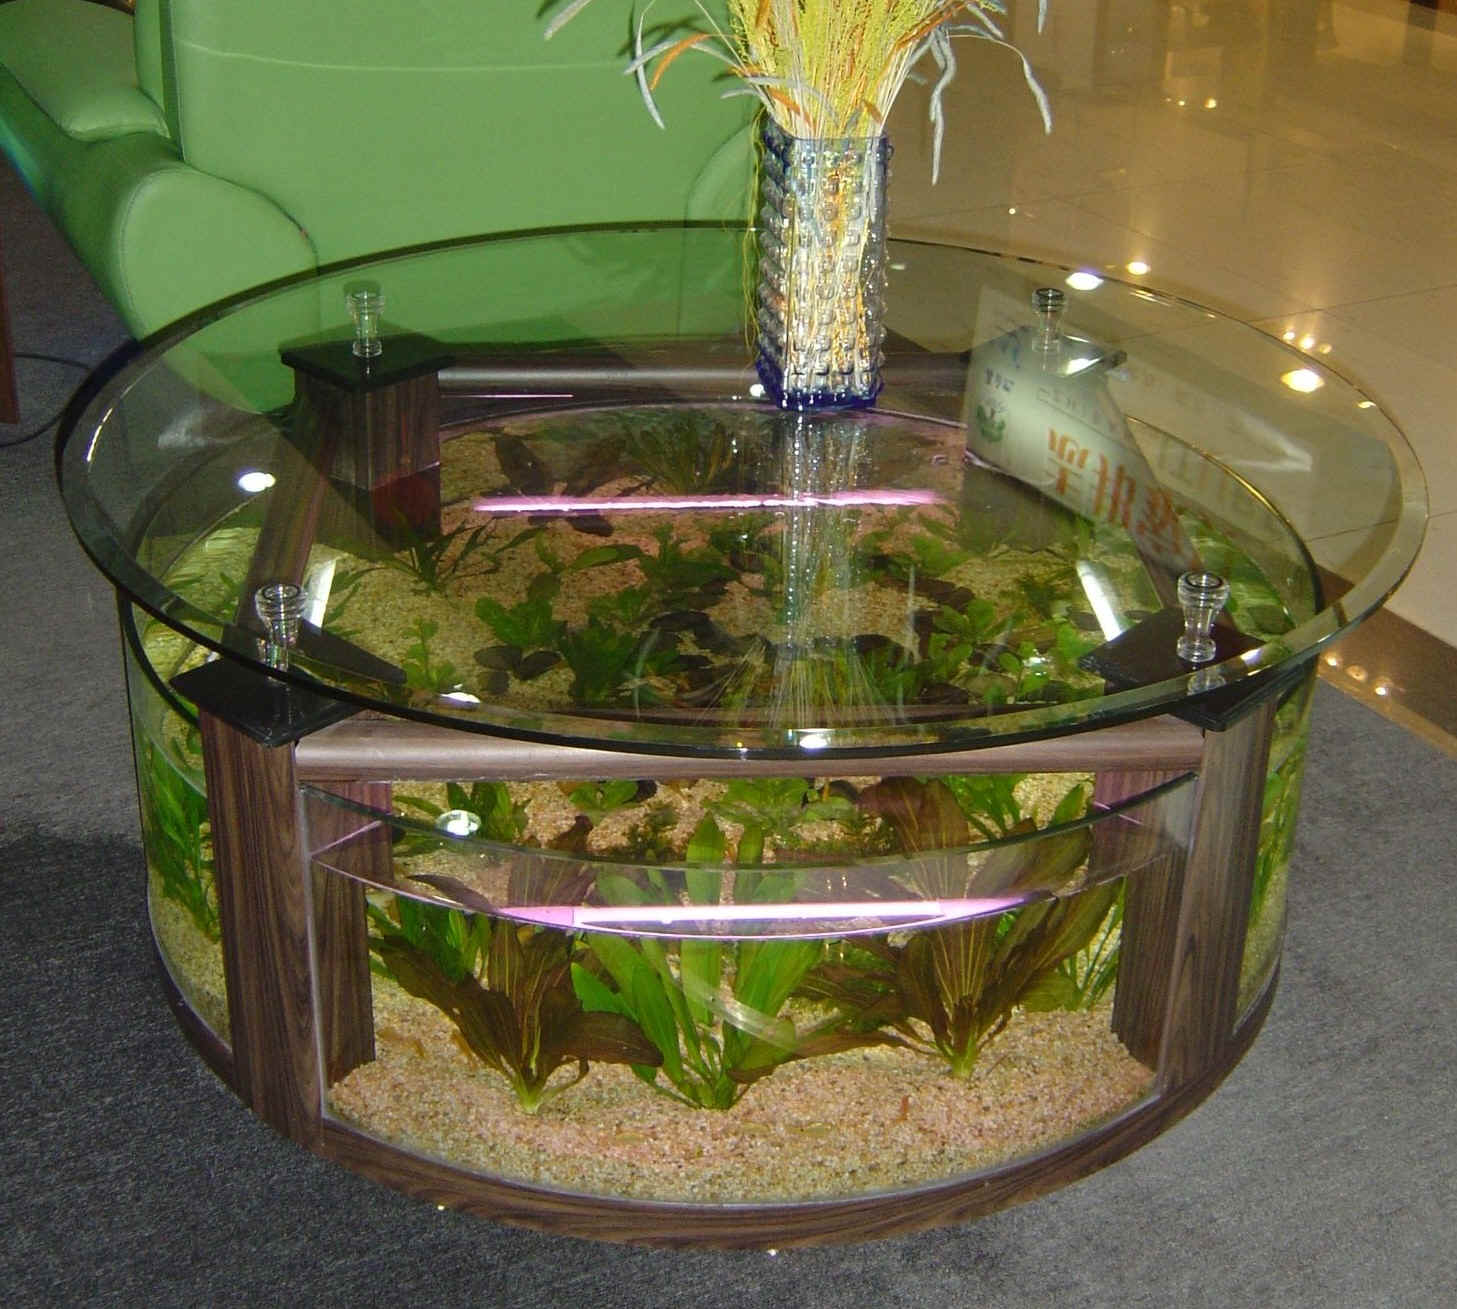 Used aquarium fish tank for sale - Half Circle Desks